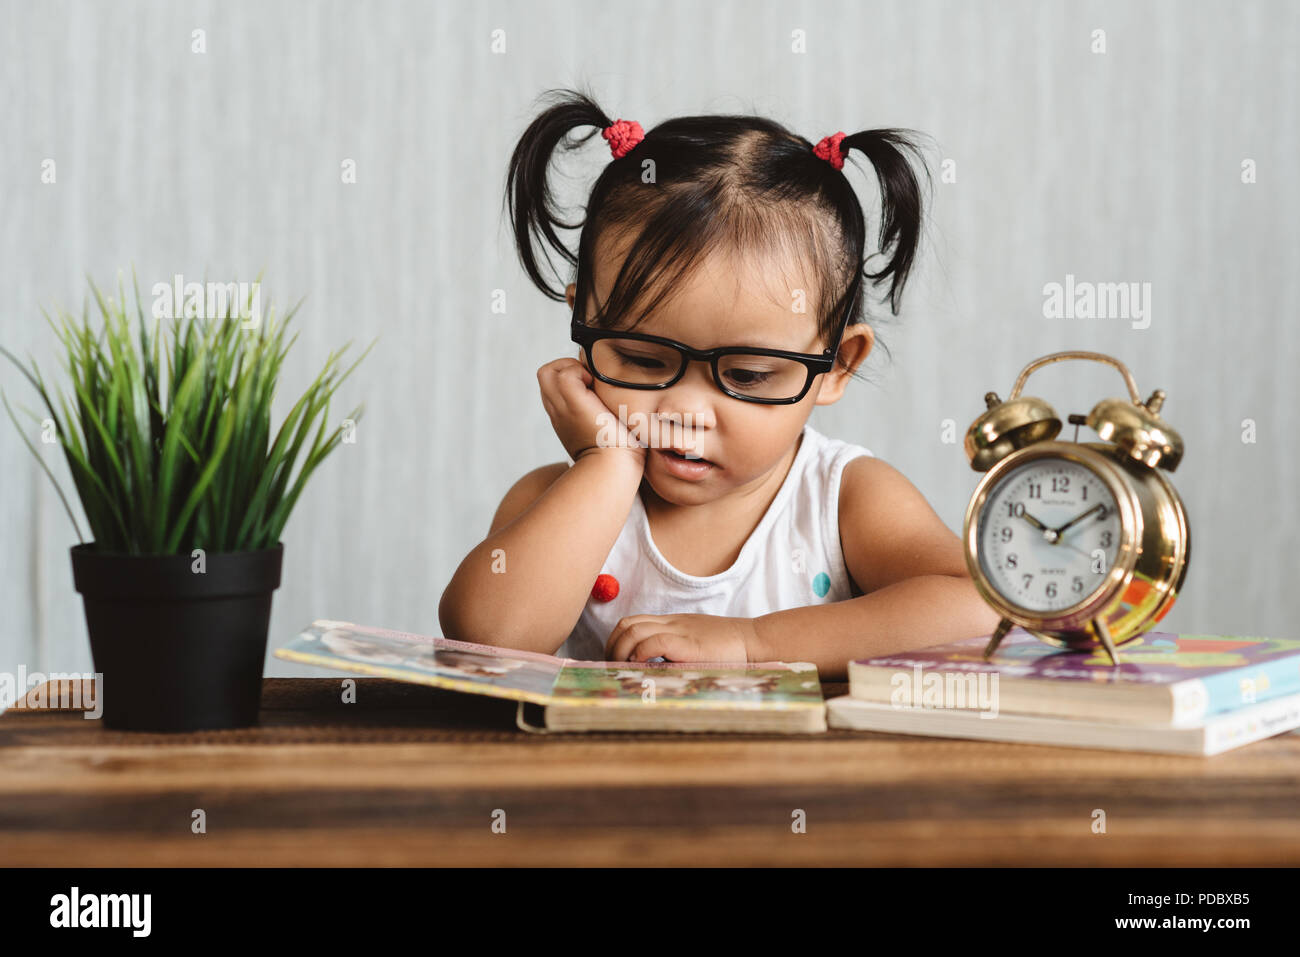 cute serious looking little asian toddler wearing spectacle reading